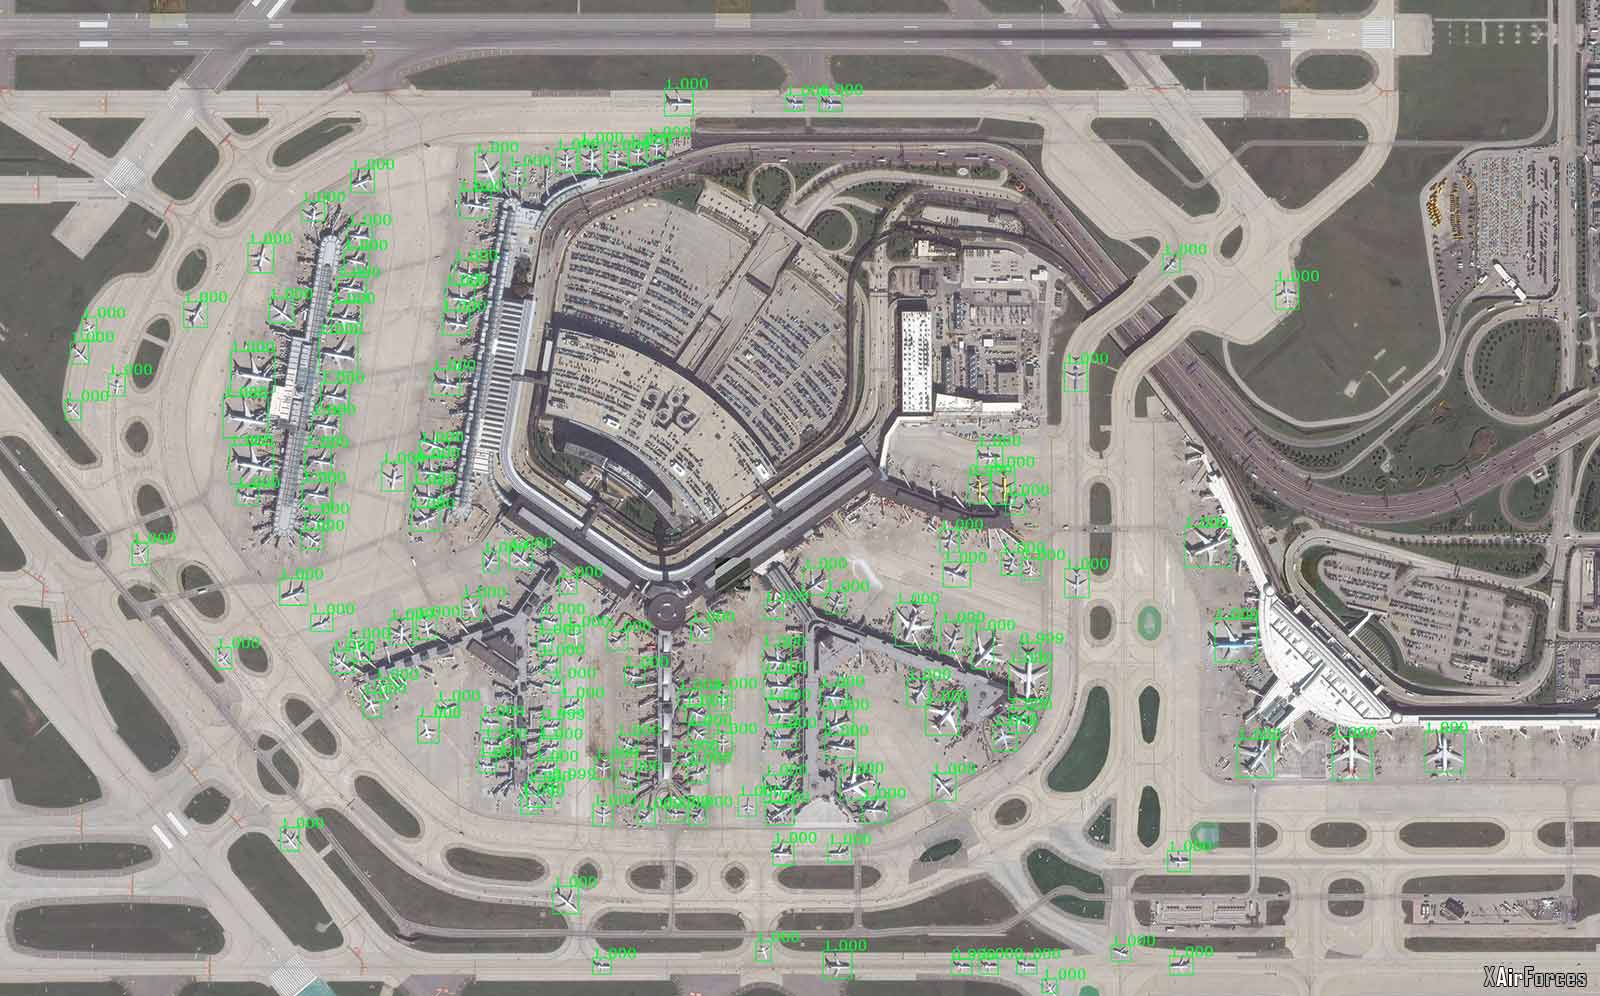 US Large airplanes automatically identified at Chicago's O'Hare Airport